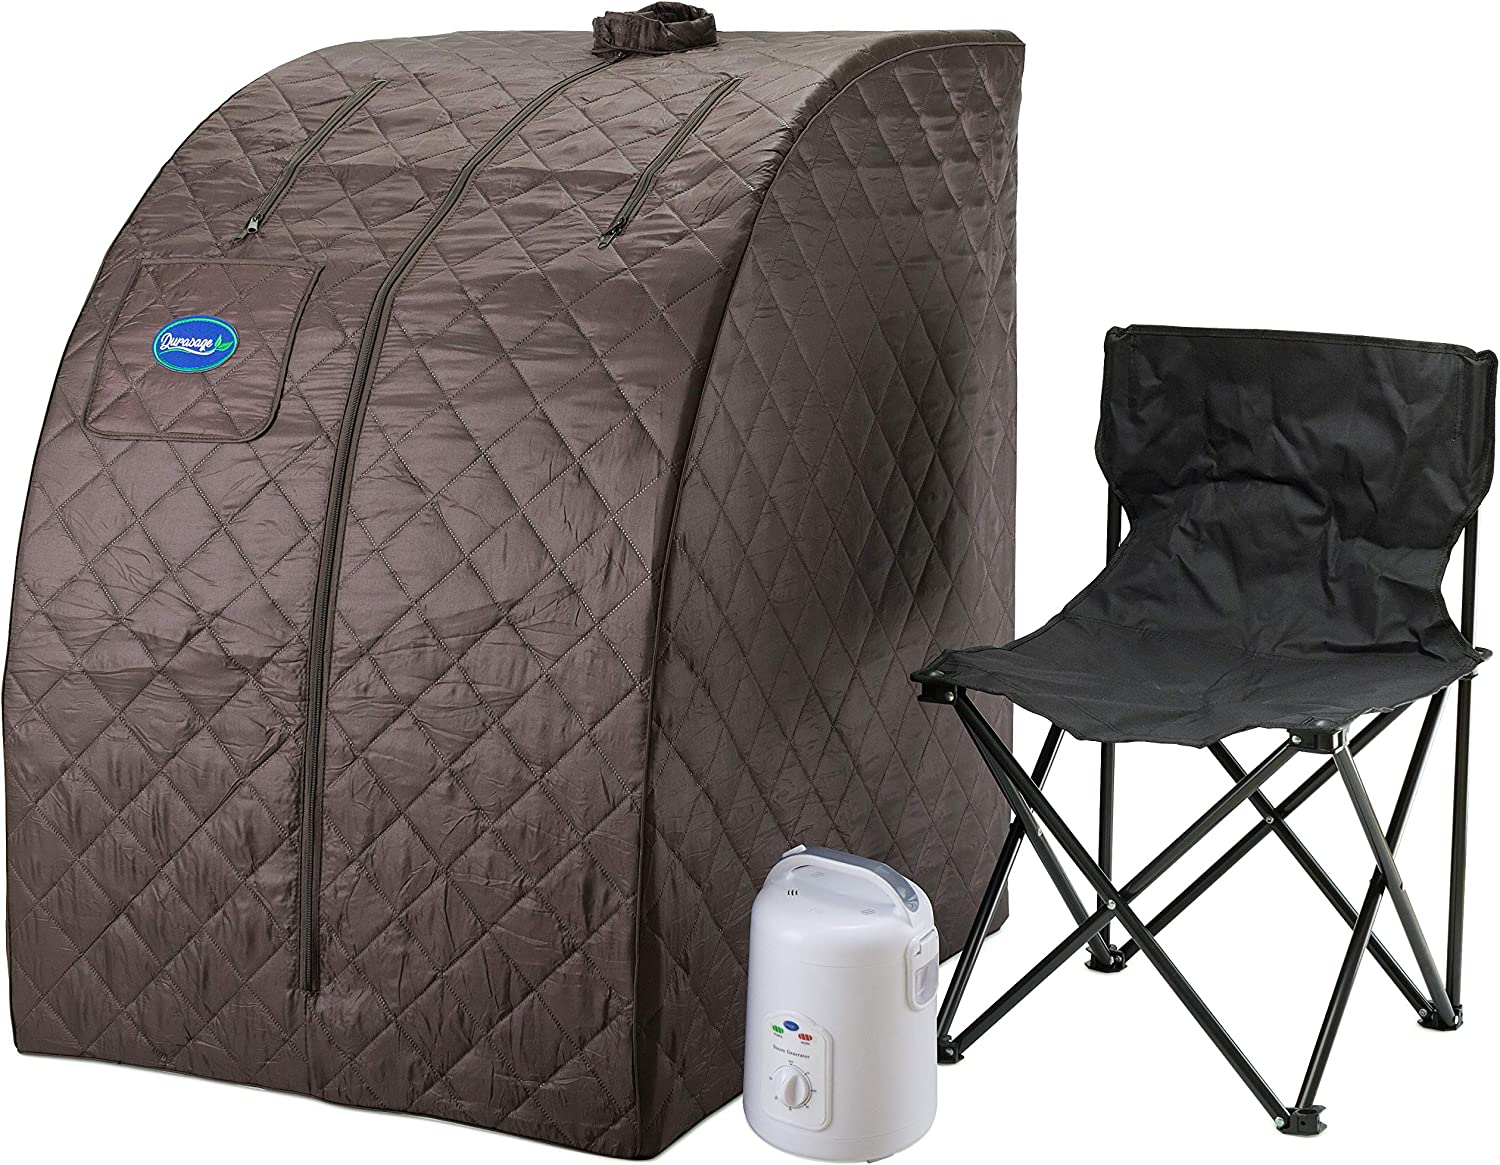 Durasage Lightweight Portable Personal Steam Sauna Spa for Weight Loss, Detox, Relaxation at Home, 60 Minute Timer, 800 Watt Steam Generator, Chair Included (Black Coffee)